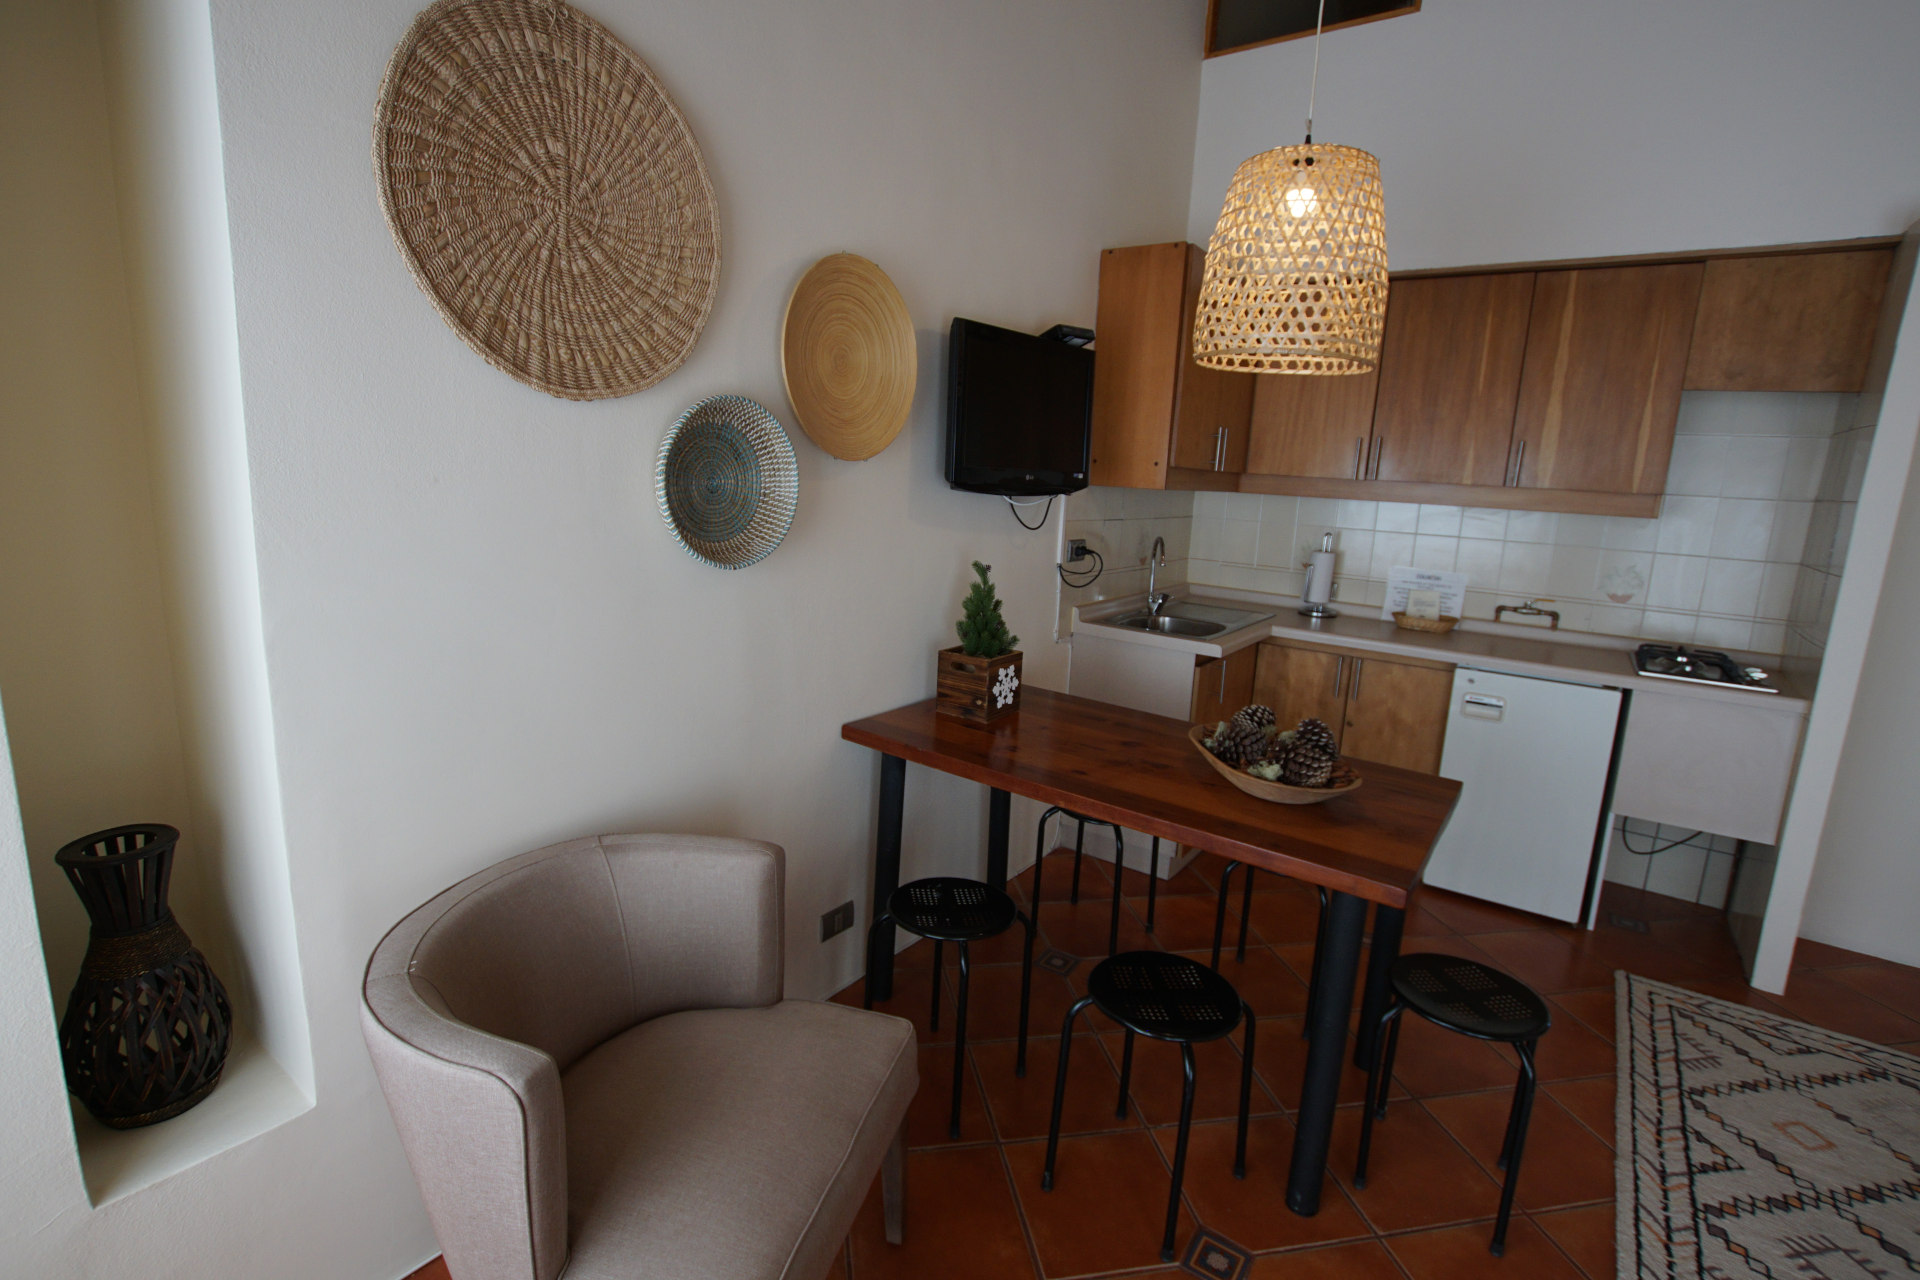 Kitchenette - Departamento Tipo B 221